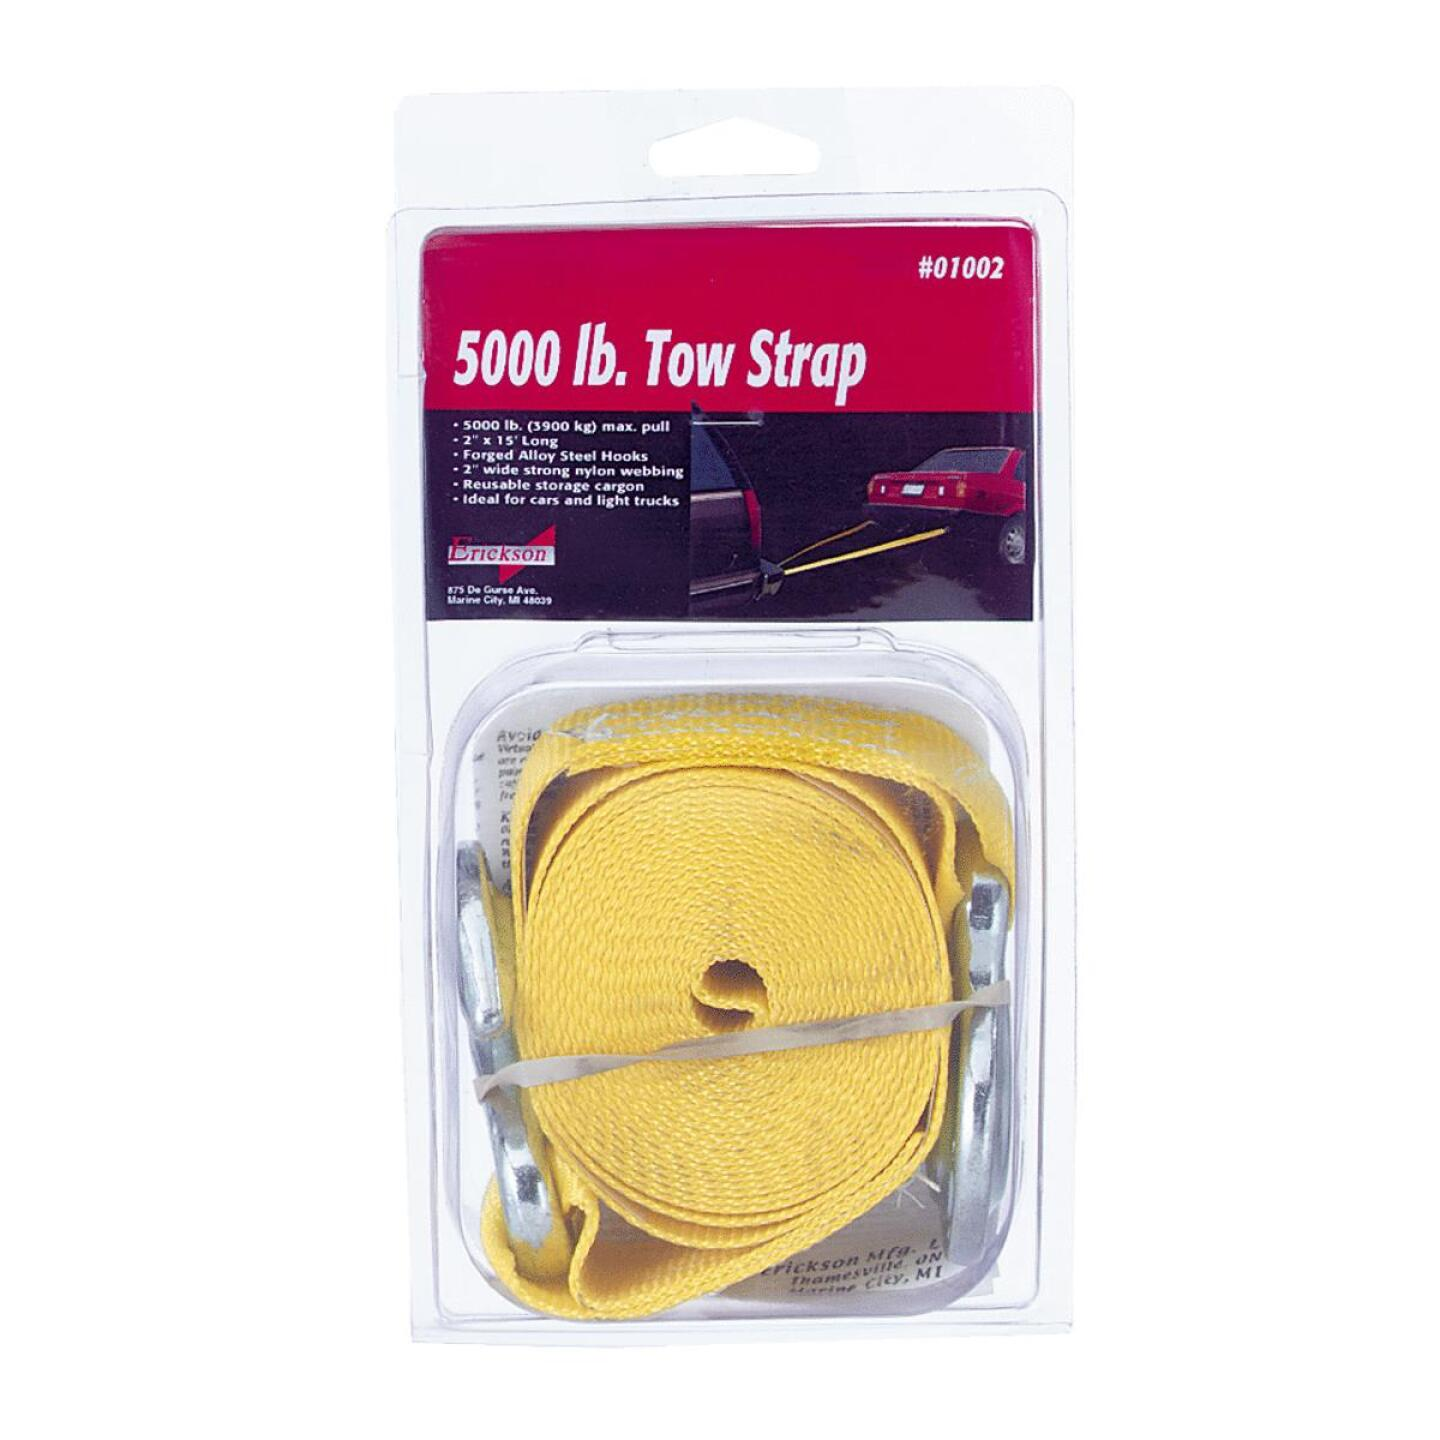 Erickson 2 In. x 15 Ft. 2500 Lb. Polyester Tow Strap with Hooks, Yellow Image 1